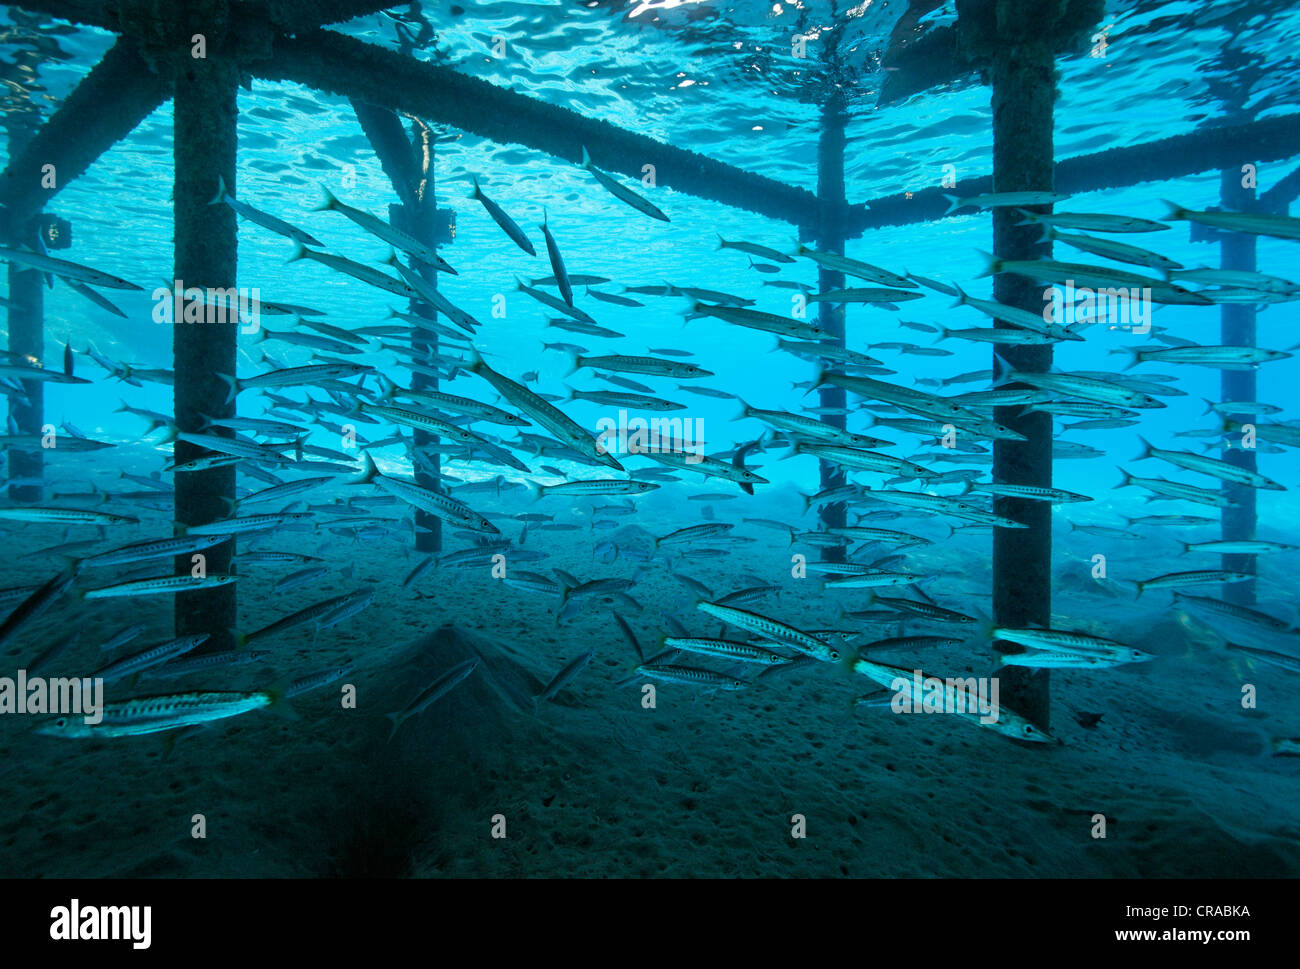 Shoal of Blackfin Barracudas (Sphyraena qenie) under jetty, Makadi Bay, Hurghada, Egypt, Red Sea, Africa - Stock Image